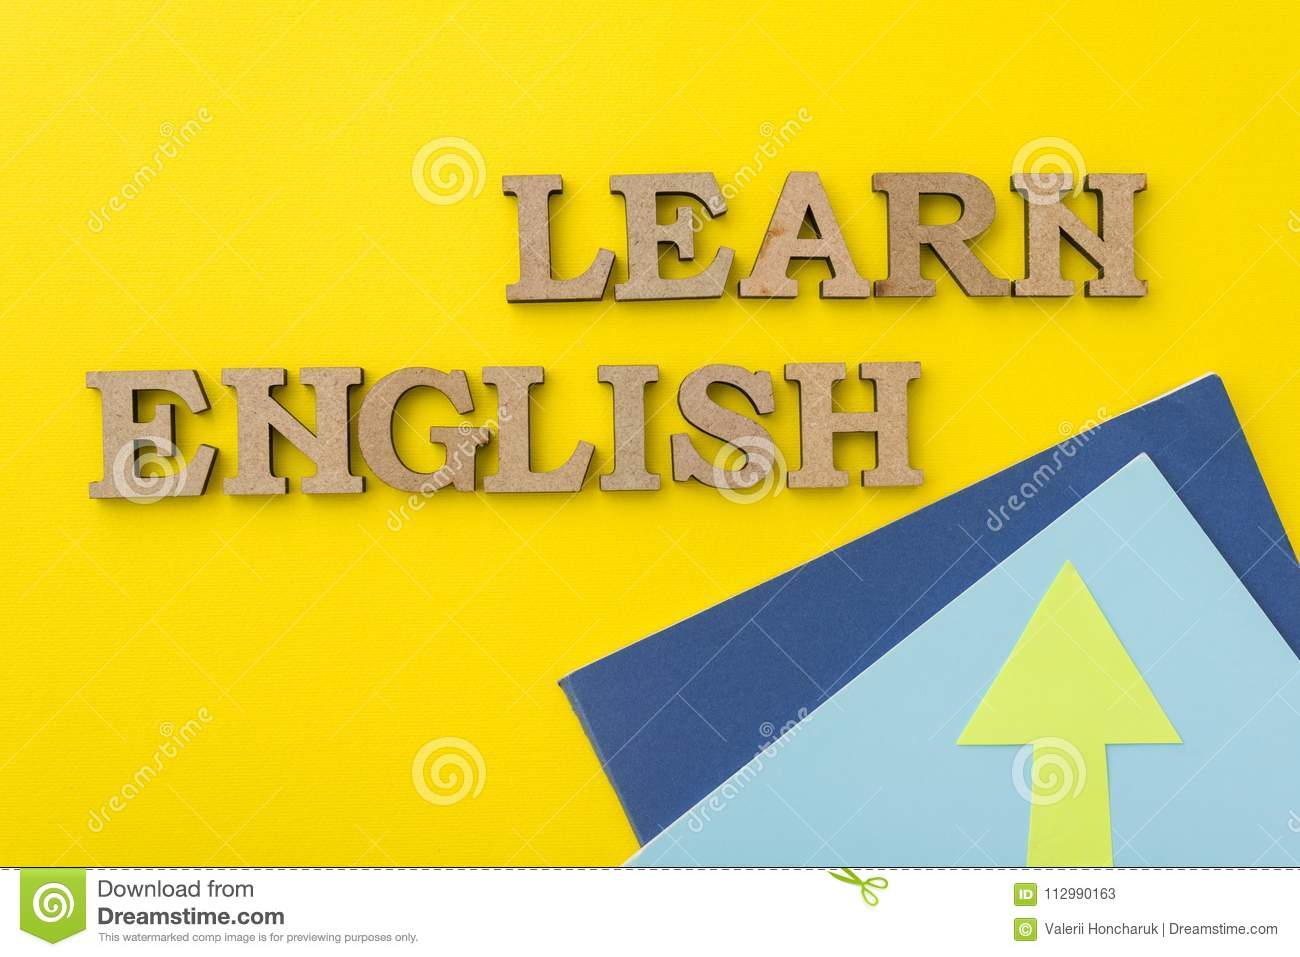 Learn English, words in wooden letters with yellow background